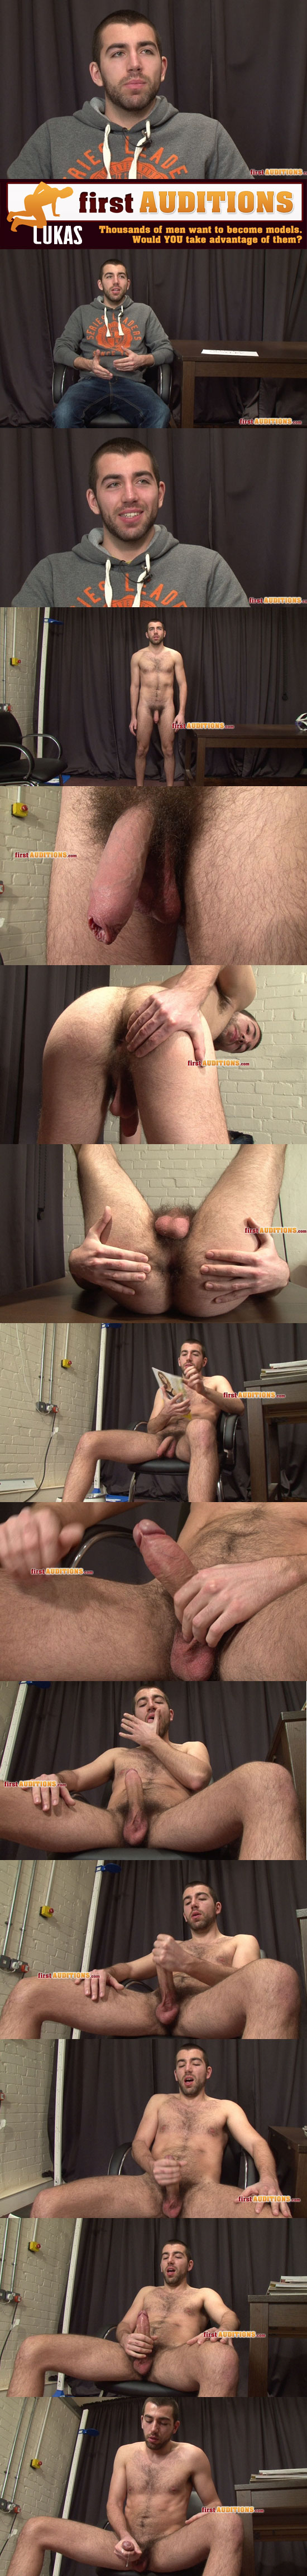 Lukas jerks his uncut cock during his porn audition